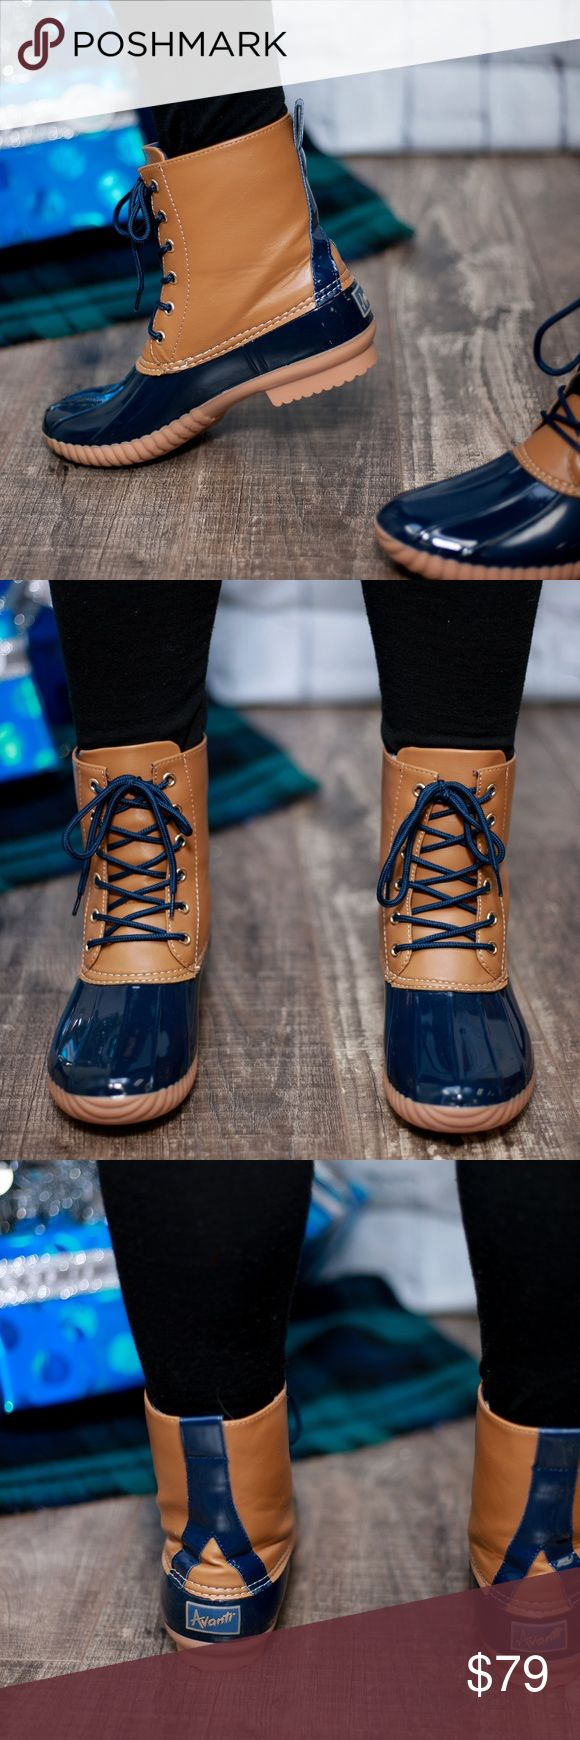 Navy Duck Boots This listing is for navy. These are selling like crazy!! $79 each or $130 for 2 pairs. Other colors available  Select lining in each boot to keep you comfy. Stitched synthetic rubber sole for durability and grip  Price FIRM unless bundled. Kyoot Klothing Shoes Winter & Rain Boots